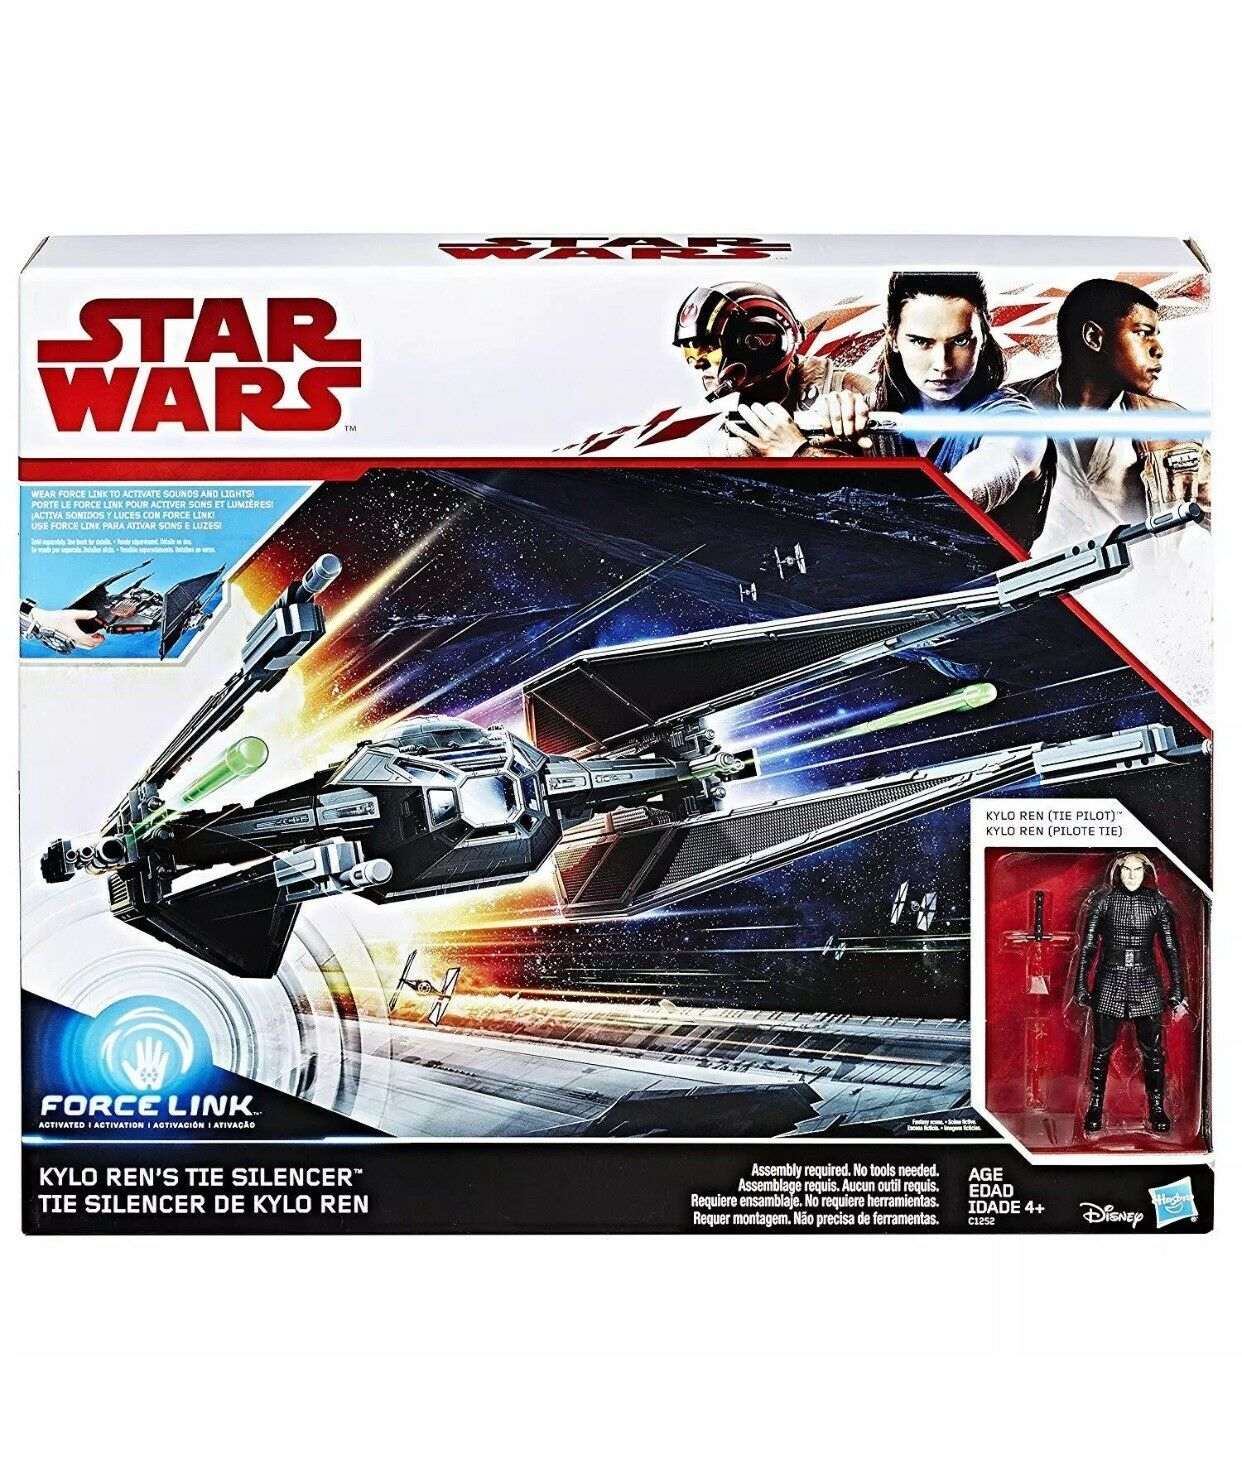 Star Wars Force Links Kylo Ren's Tie Silencer Silencer Silencer and Klyo Ren Tie Fighter Pilot 0ca432